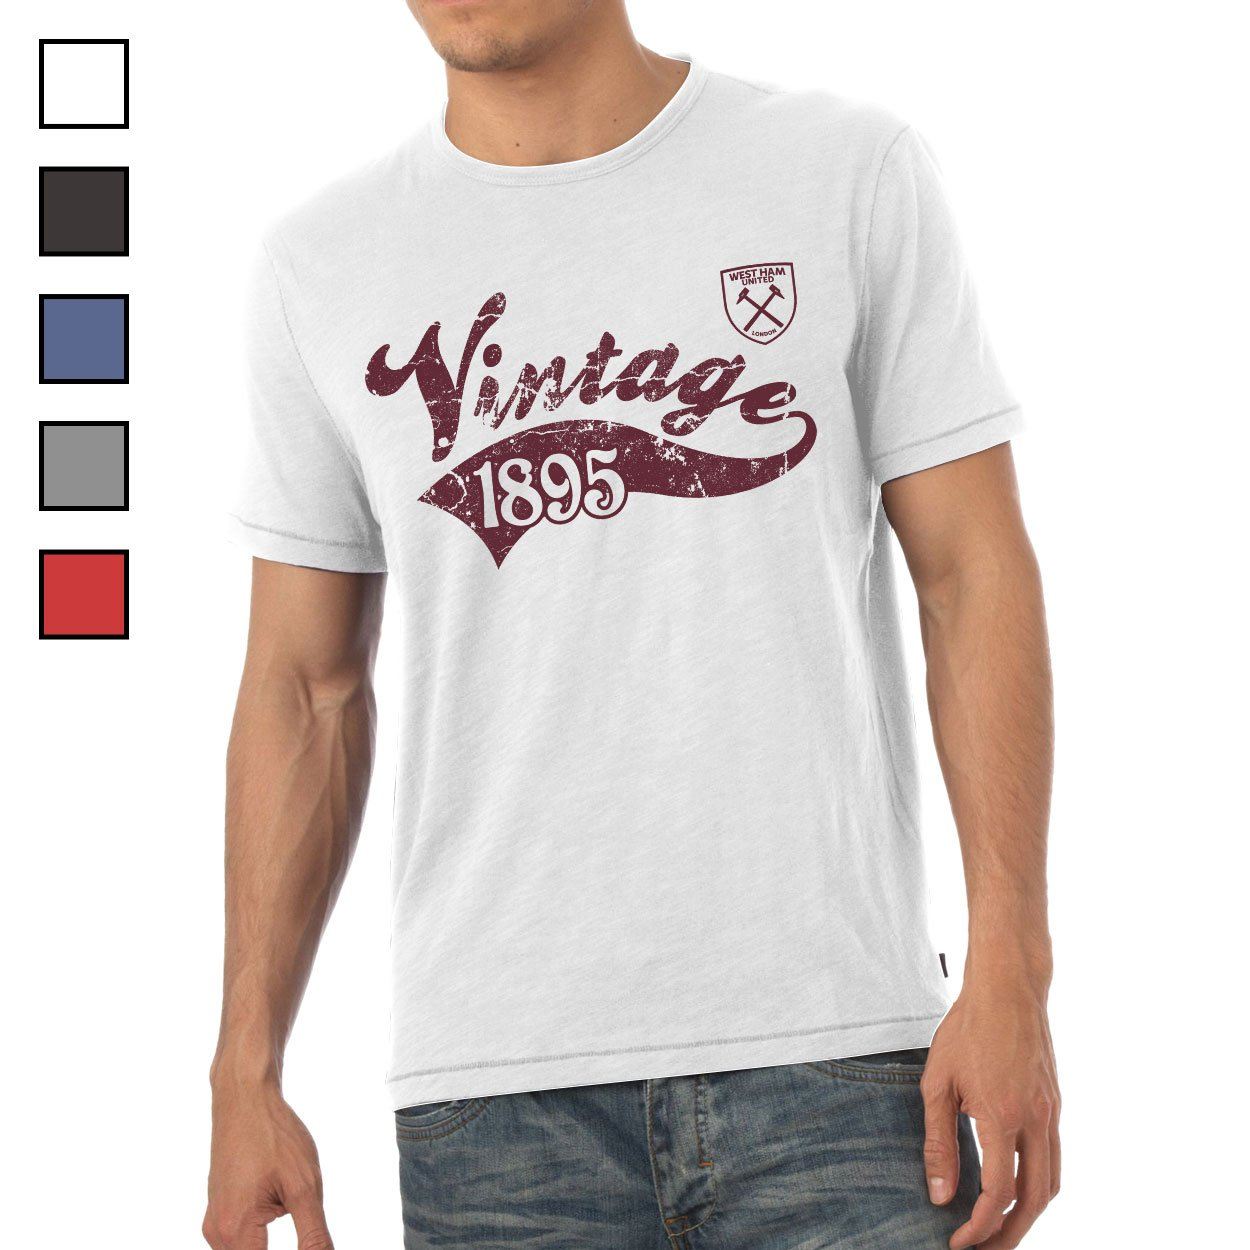 West Ham United FC Mens Vintage T-Shirt